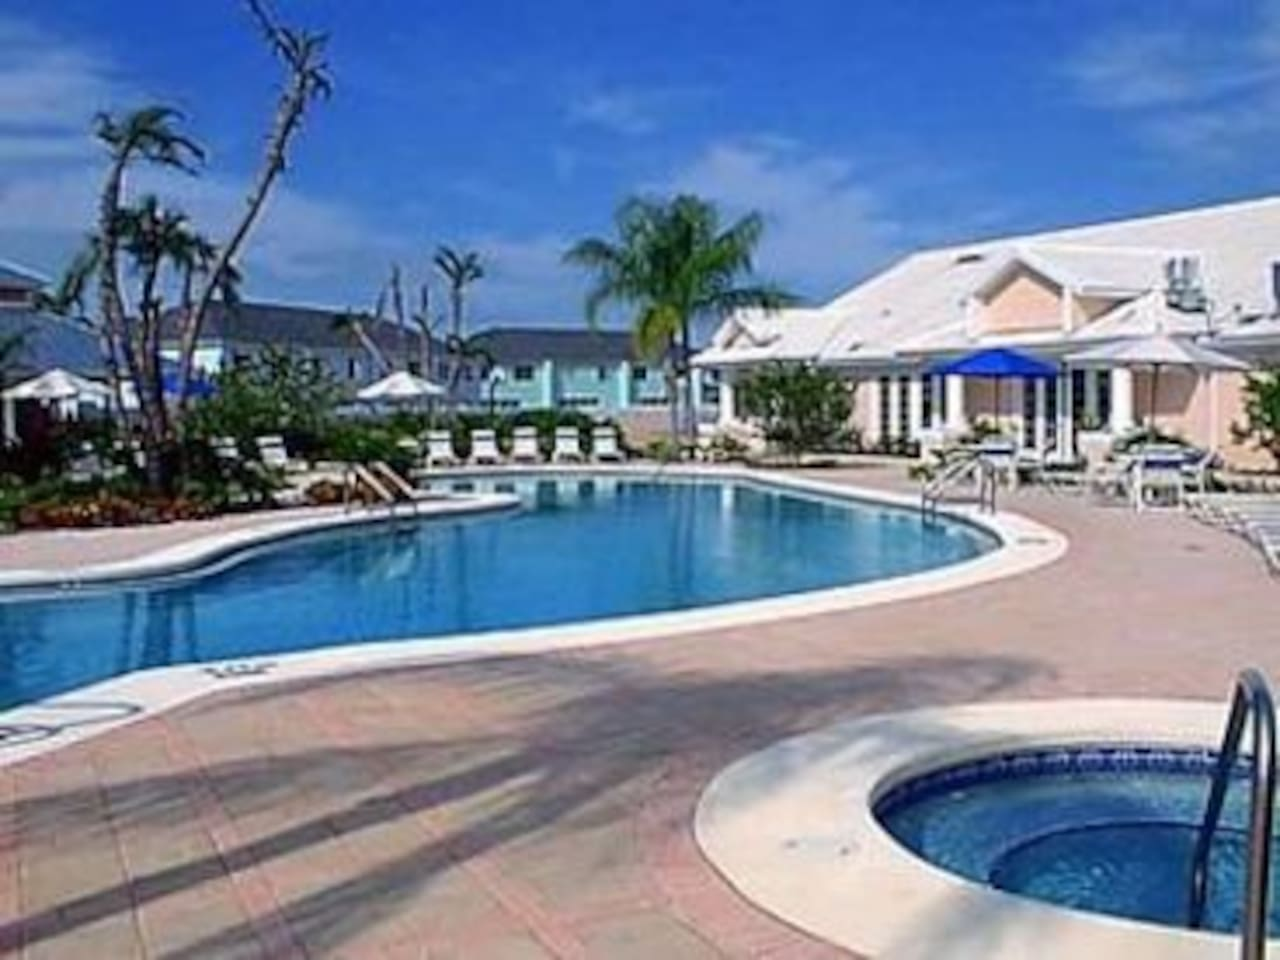 our beautiful pool area has a large kidney shaped uncrowded pool, hot tub, and a kiddy pool!  There is a playground behind this.